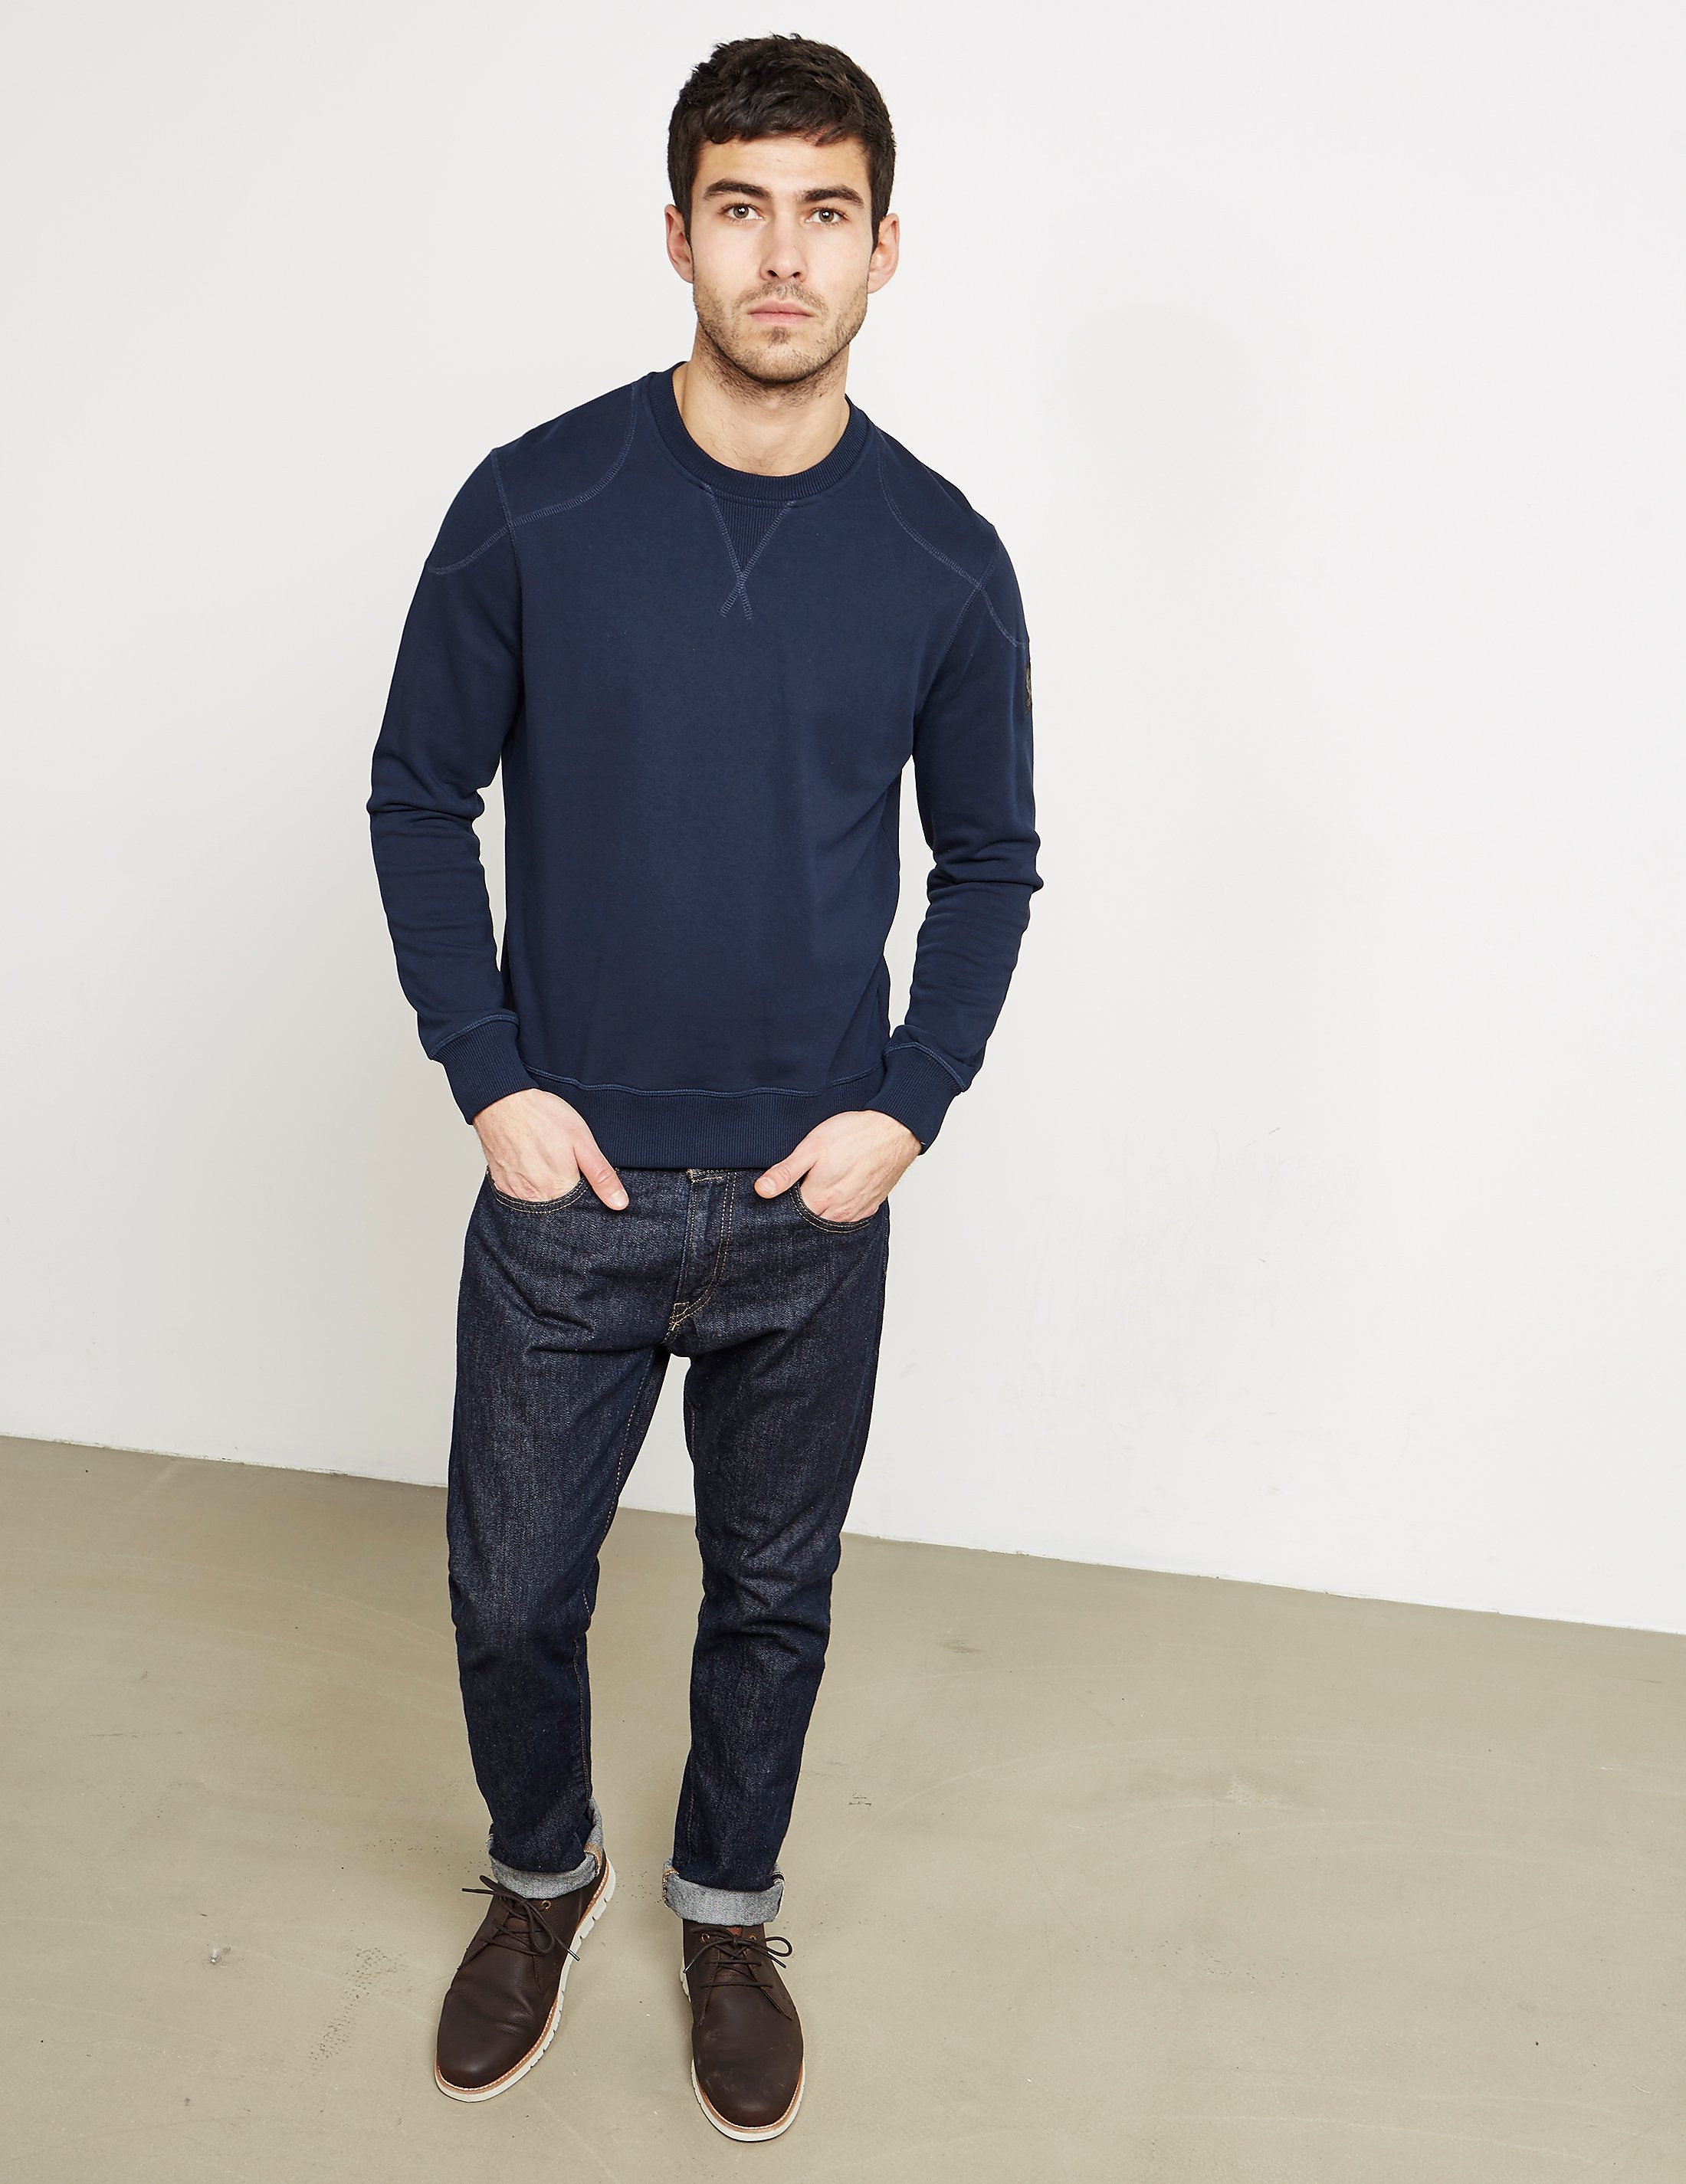 Belstaff Jeff Crew Neck Sweatshirt